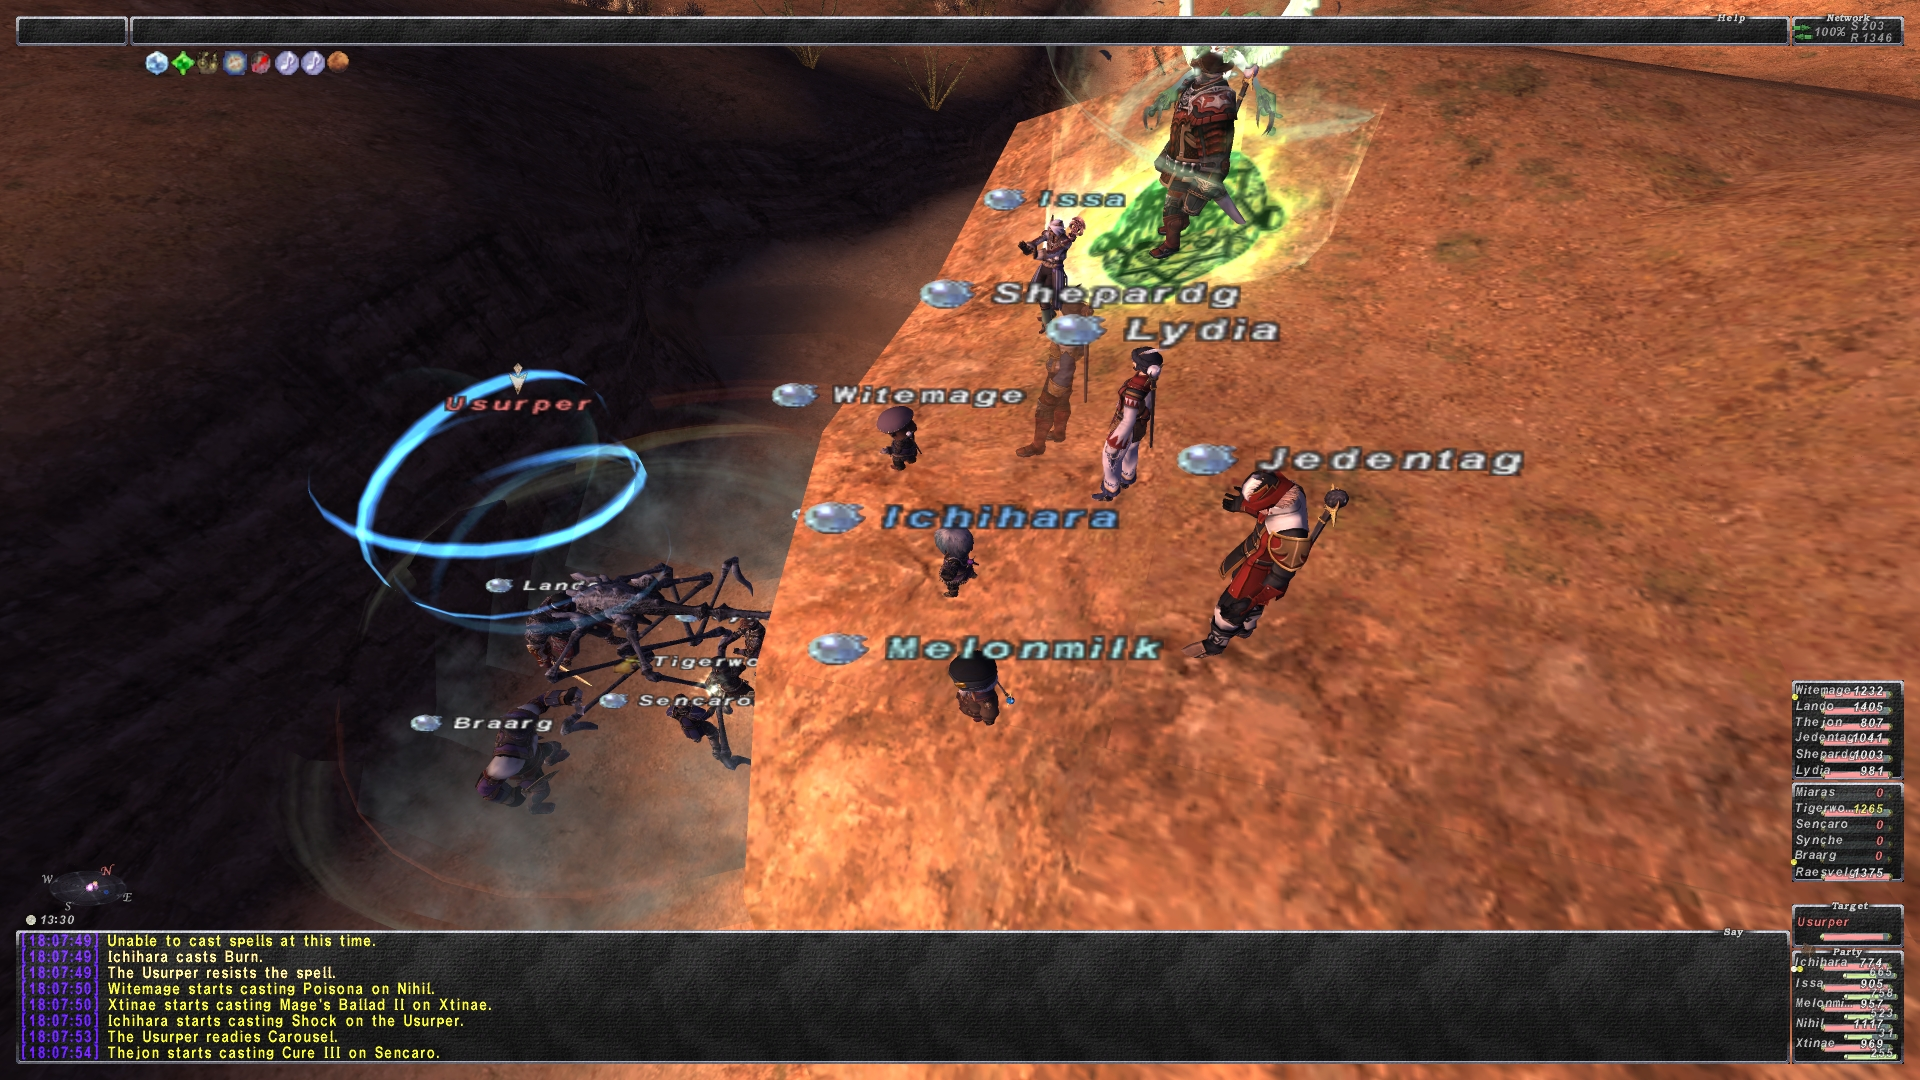 thetruepandagod ffxi ironclad zones sunderer sauce weak hero discussion tahrongi talking abyssea